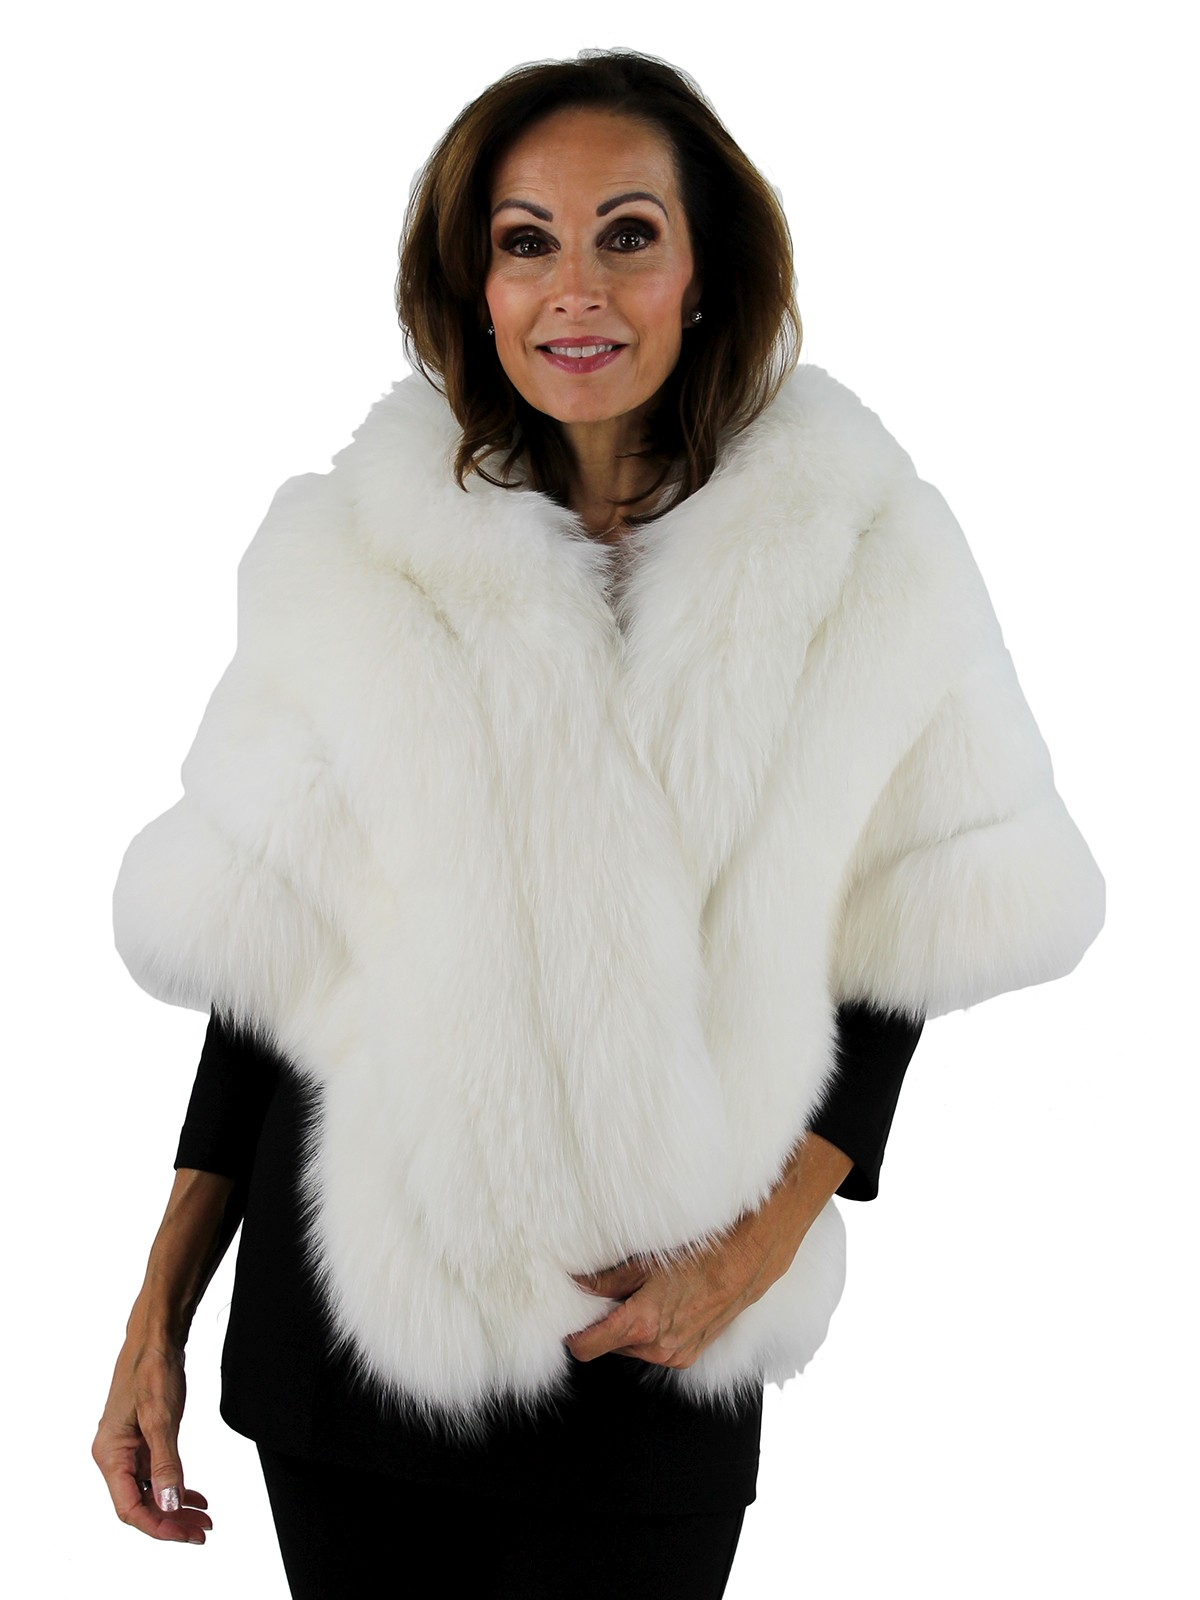 White Fur Stole >> White Fox Fur Stole By Gorski Women S One Size Fits All Day Furs